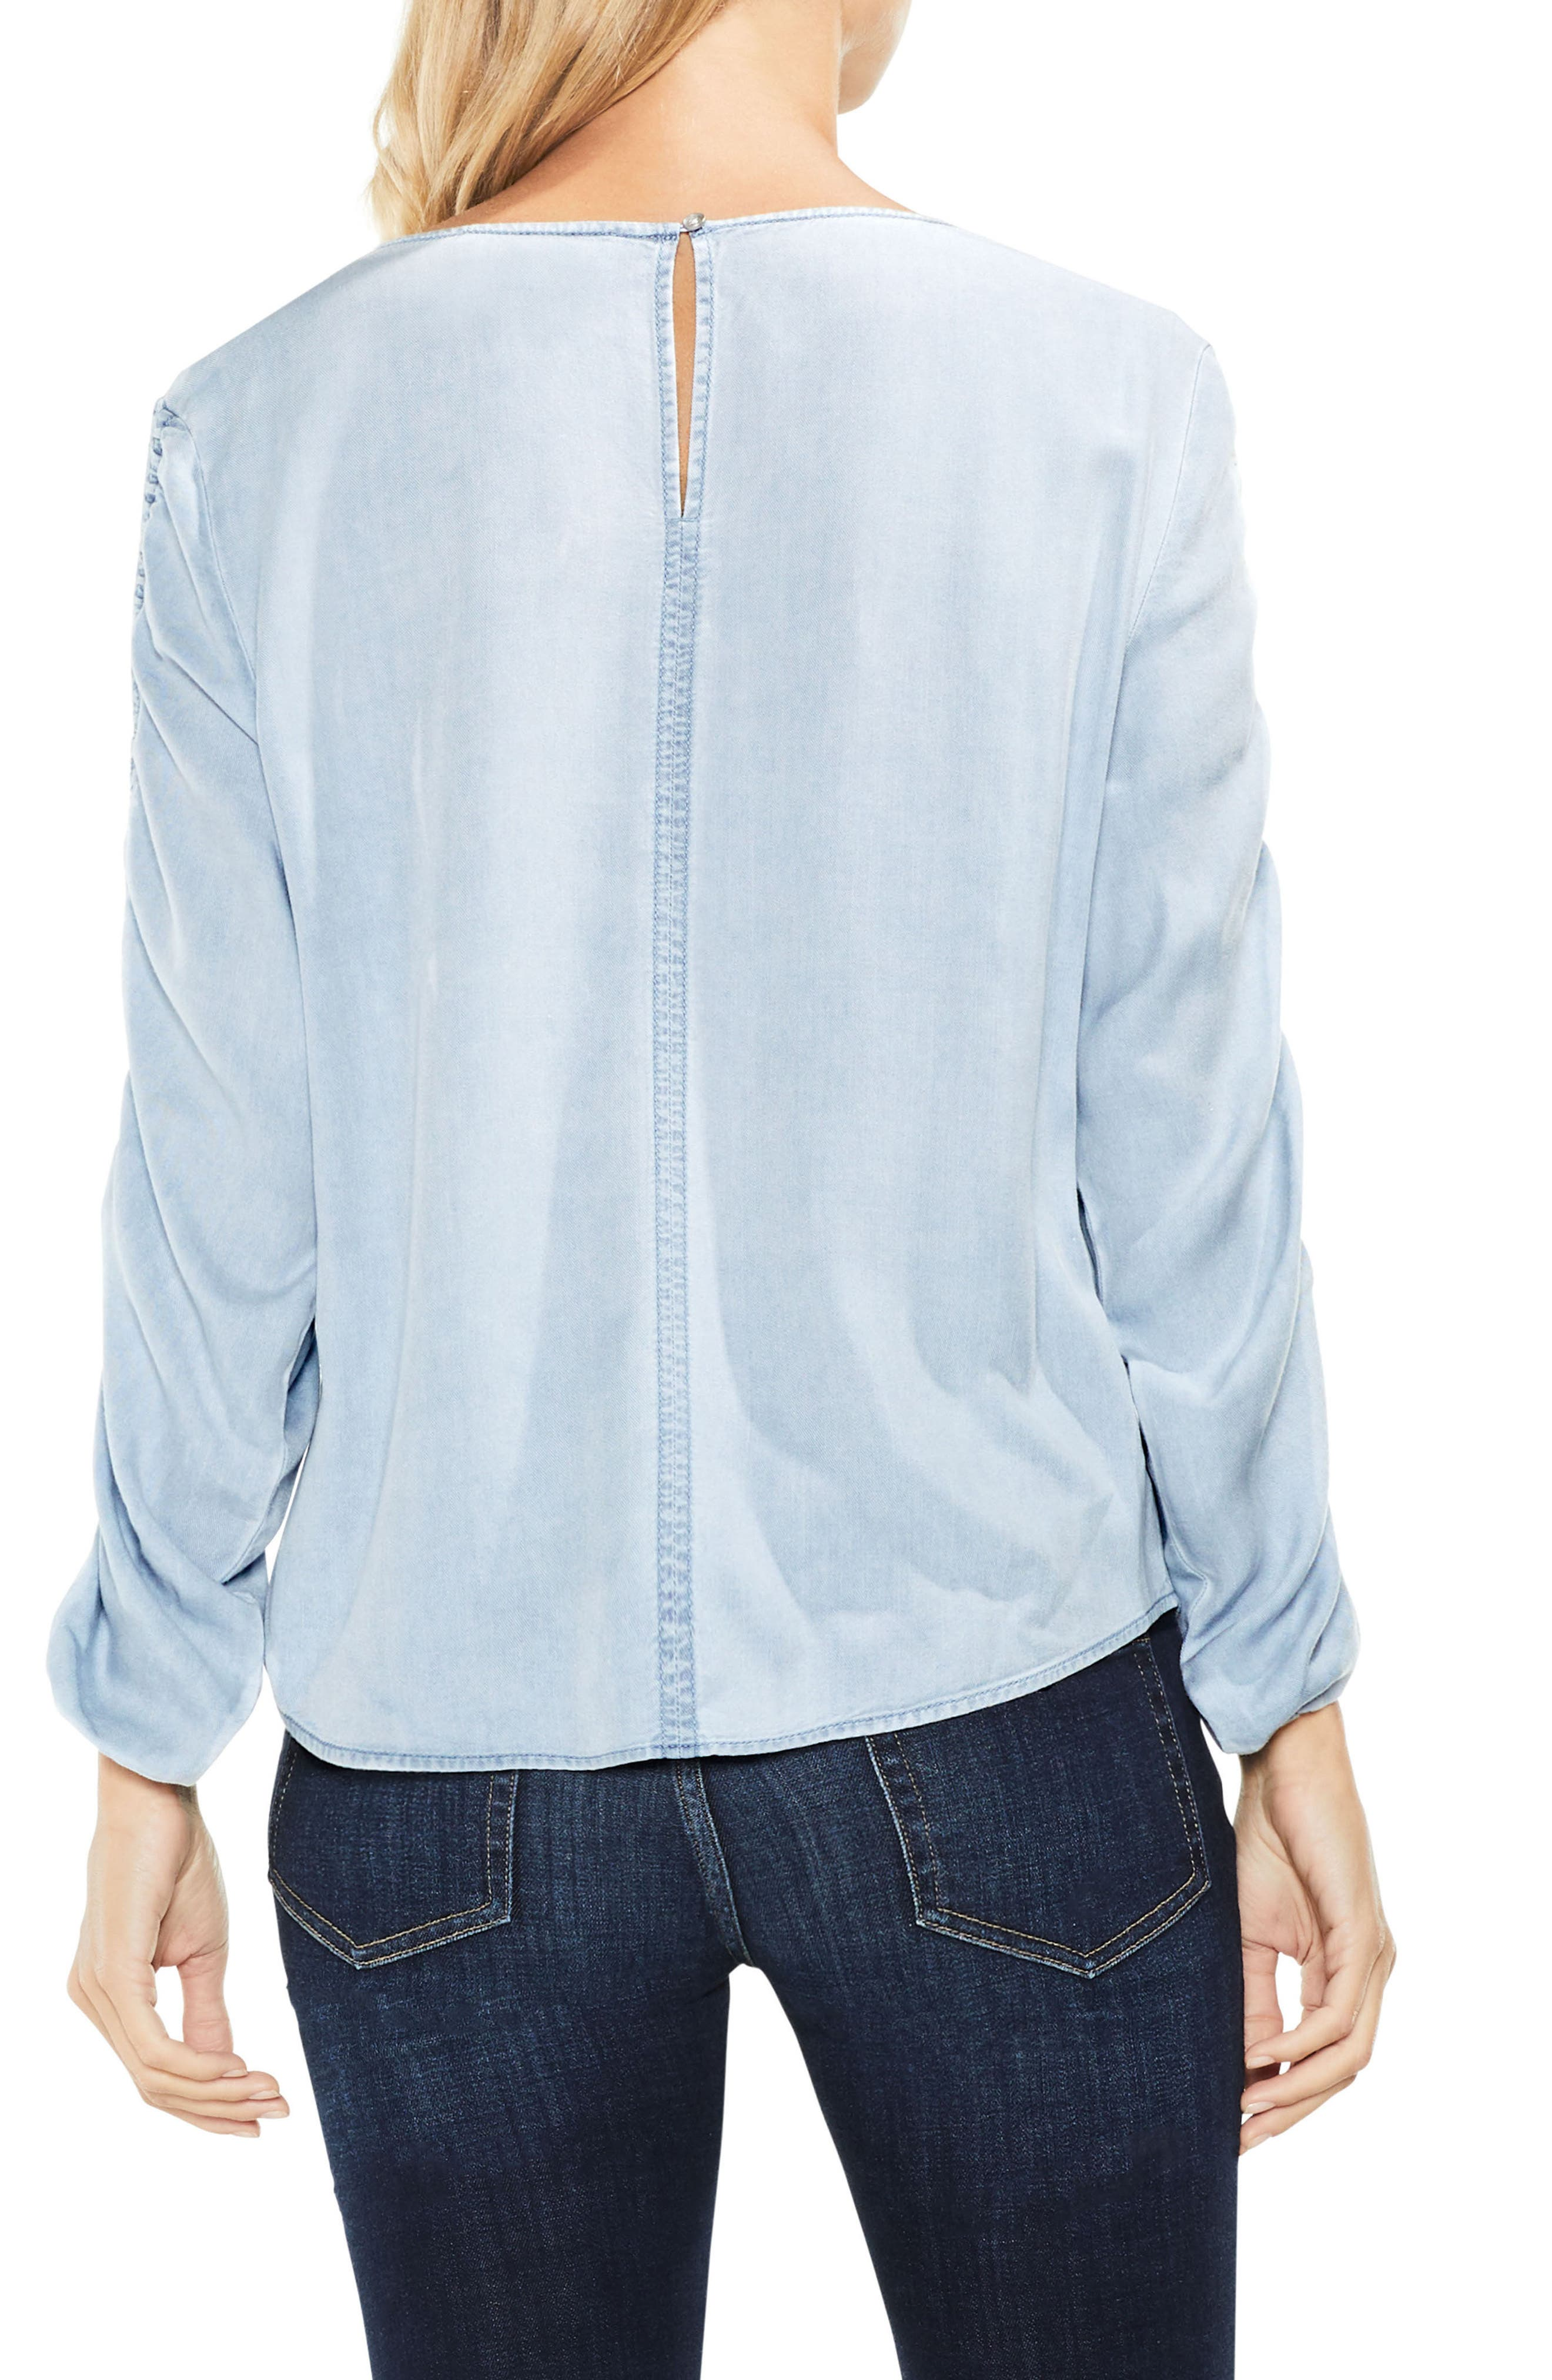 Ruched Sleeve Pastel Fade Top,                             Alternate thumbnail 2, color,                             489